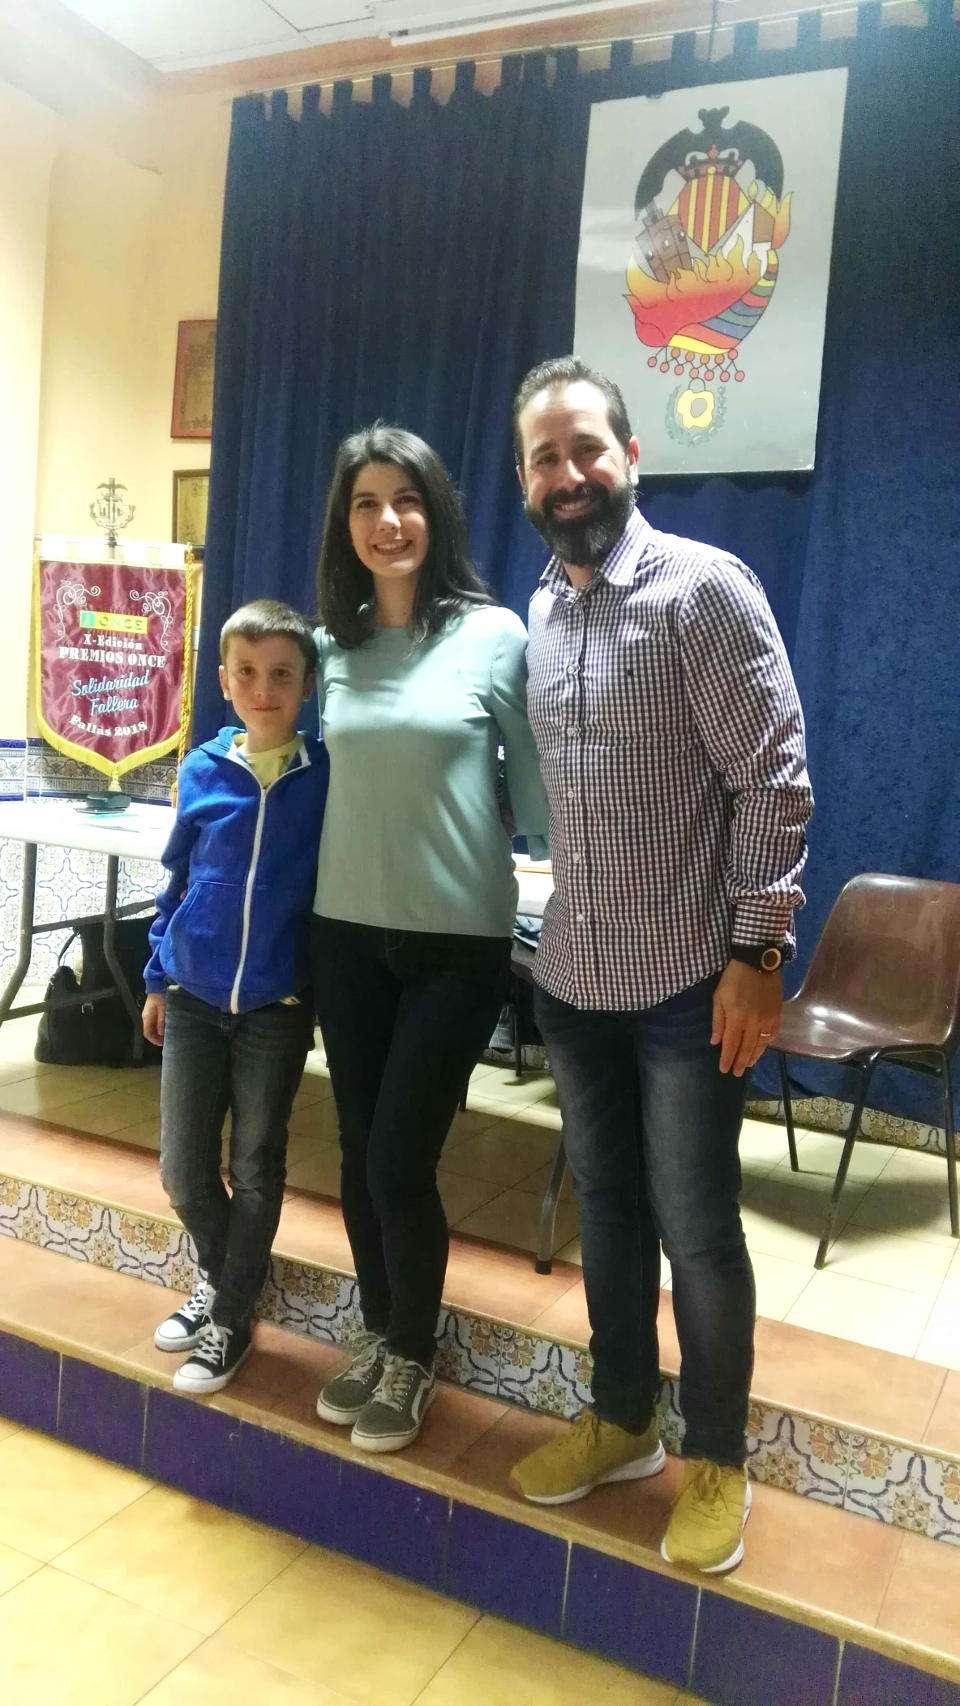 Appointment of the Fallera mayor and the President Children of the Falla Santa Maria Micaela to 2019 3